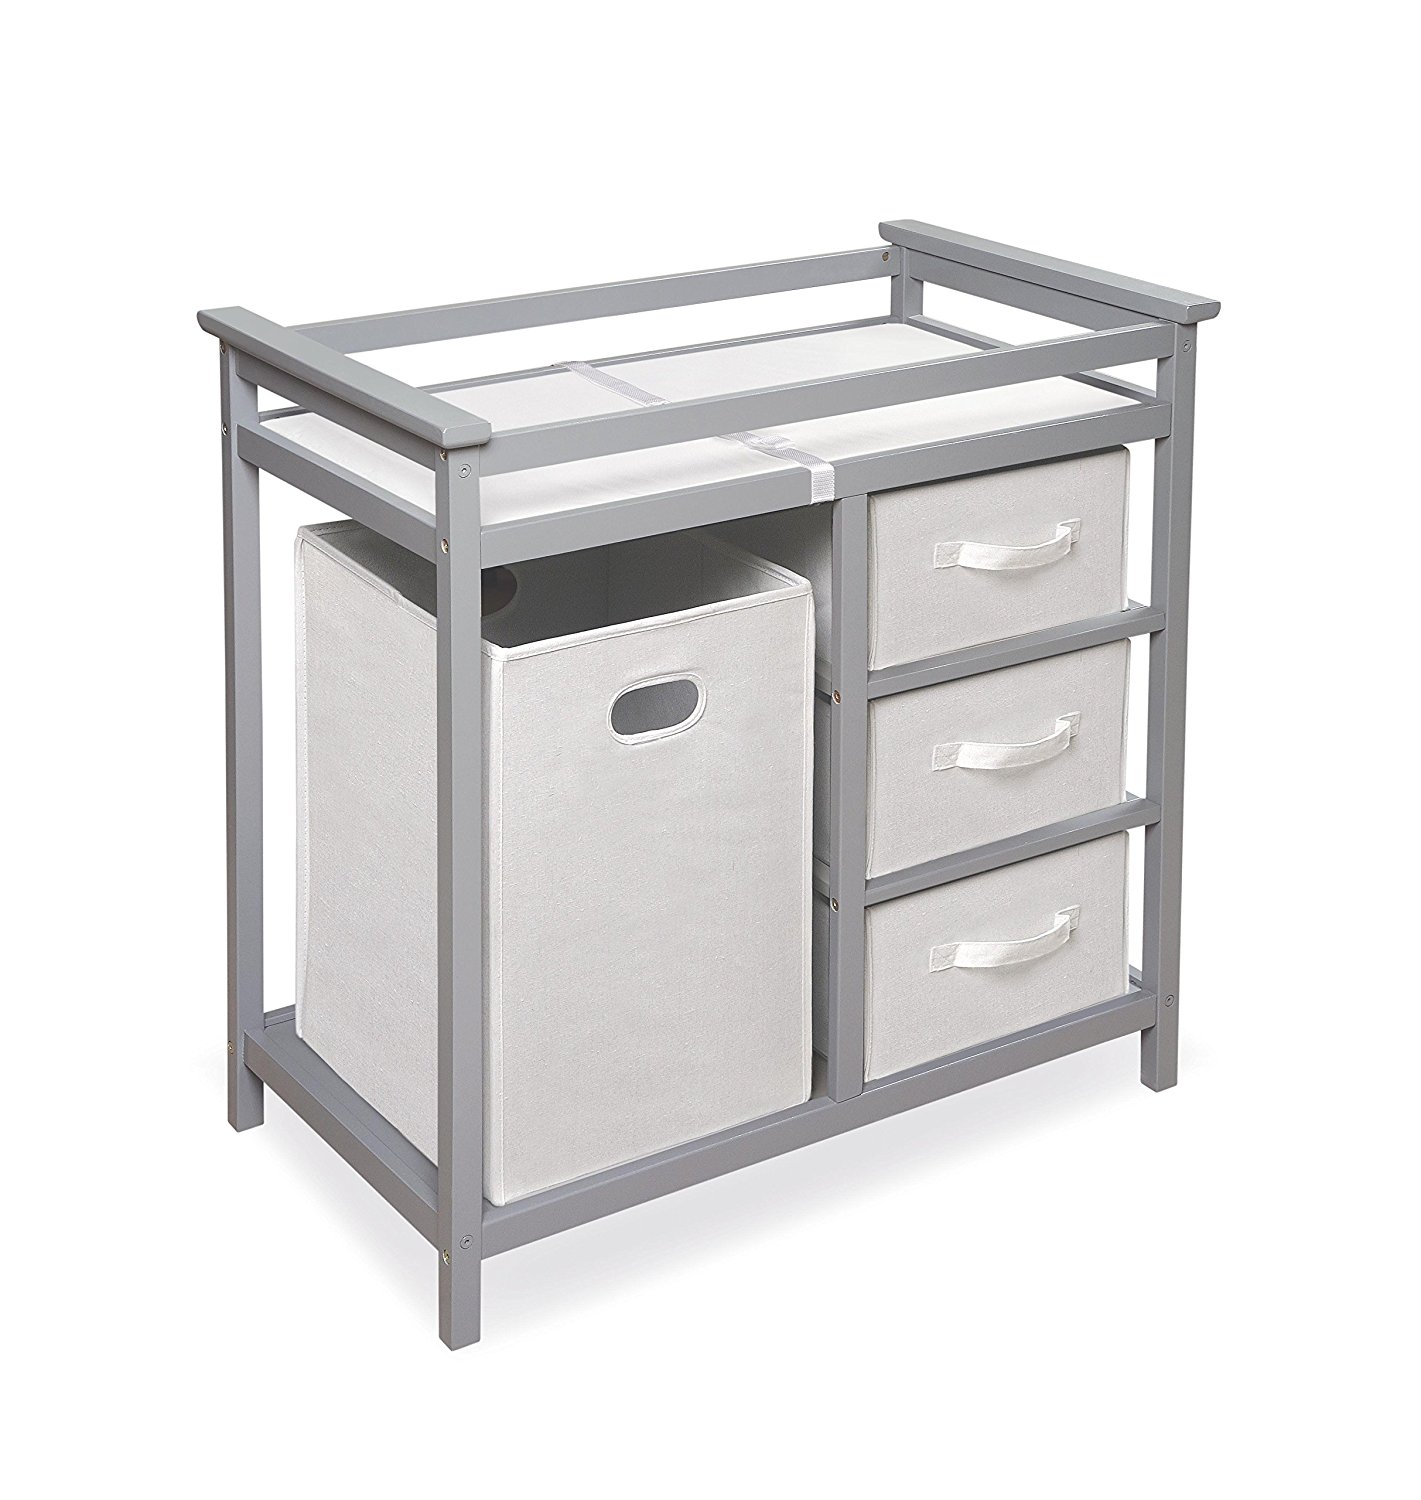 badger basket modern changing table, best changing tables with drawers, changing tables with drawers, modern changing table, gray changing table, stylish changing table